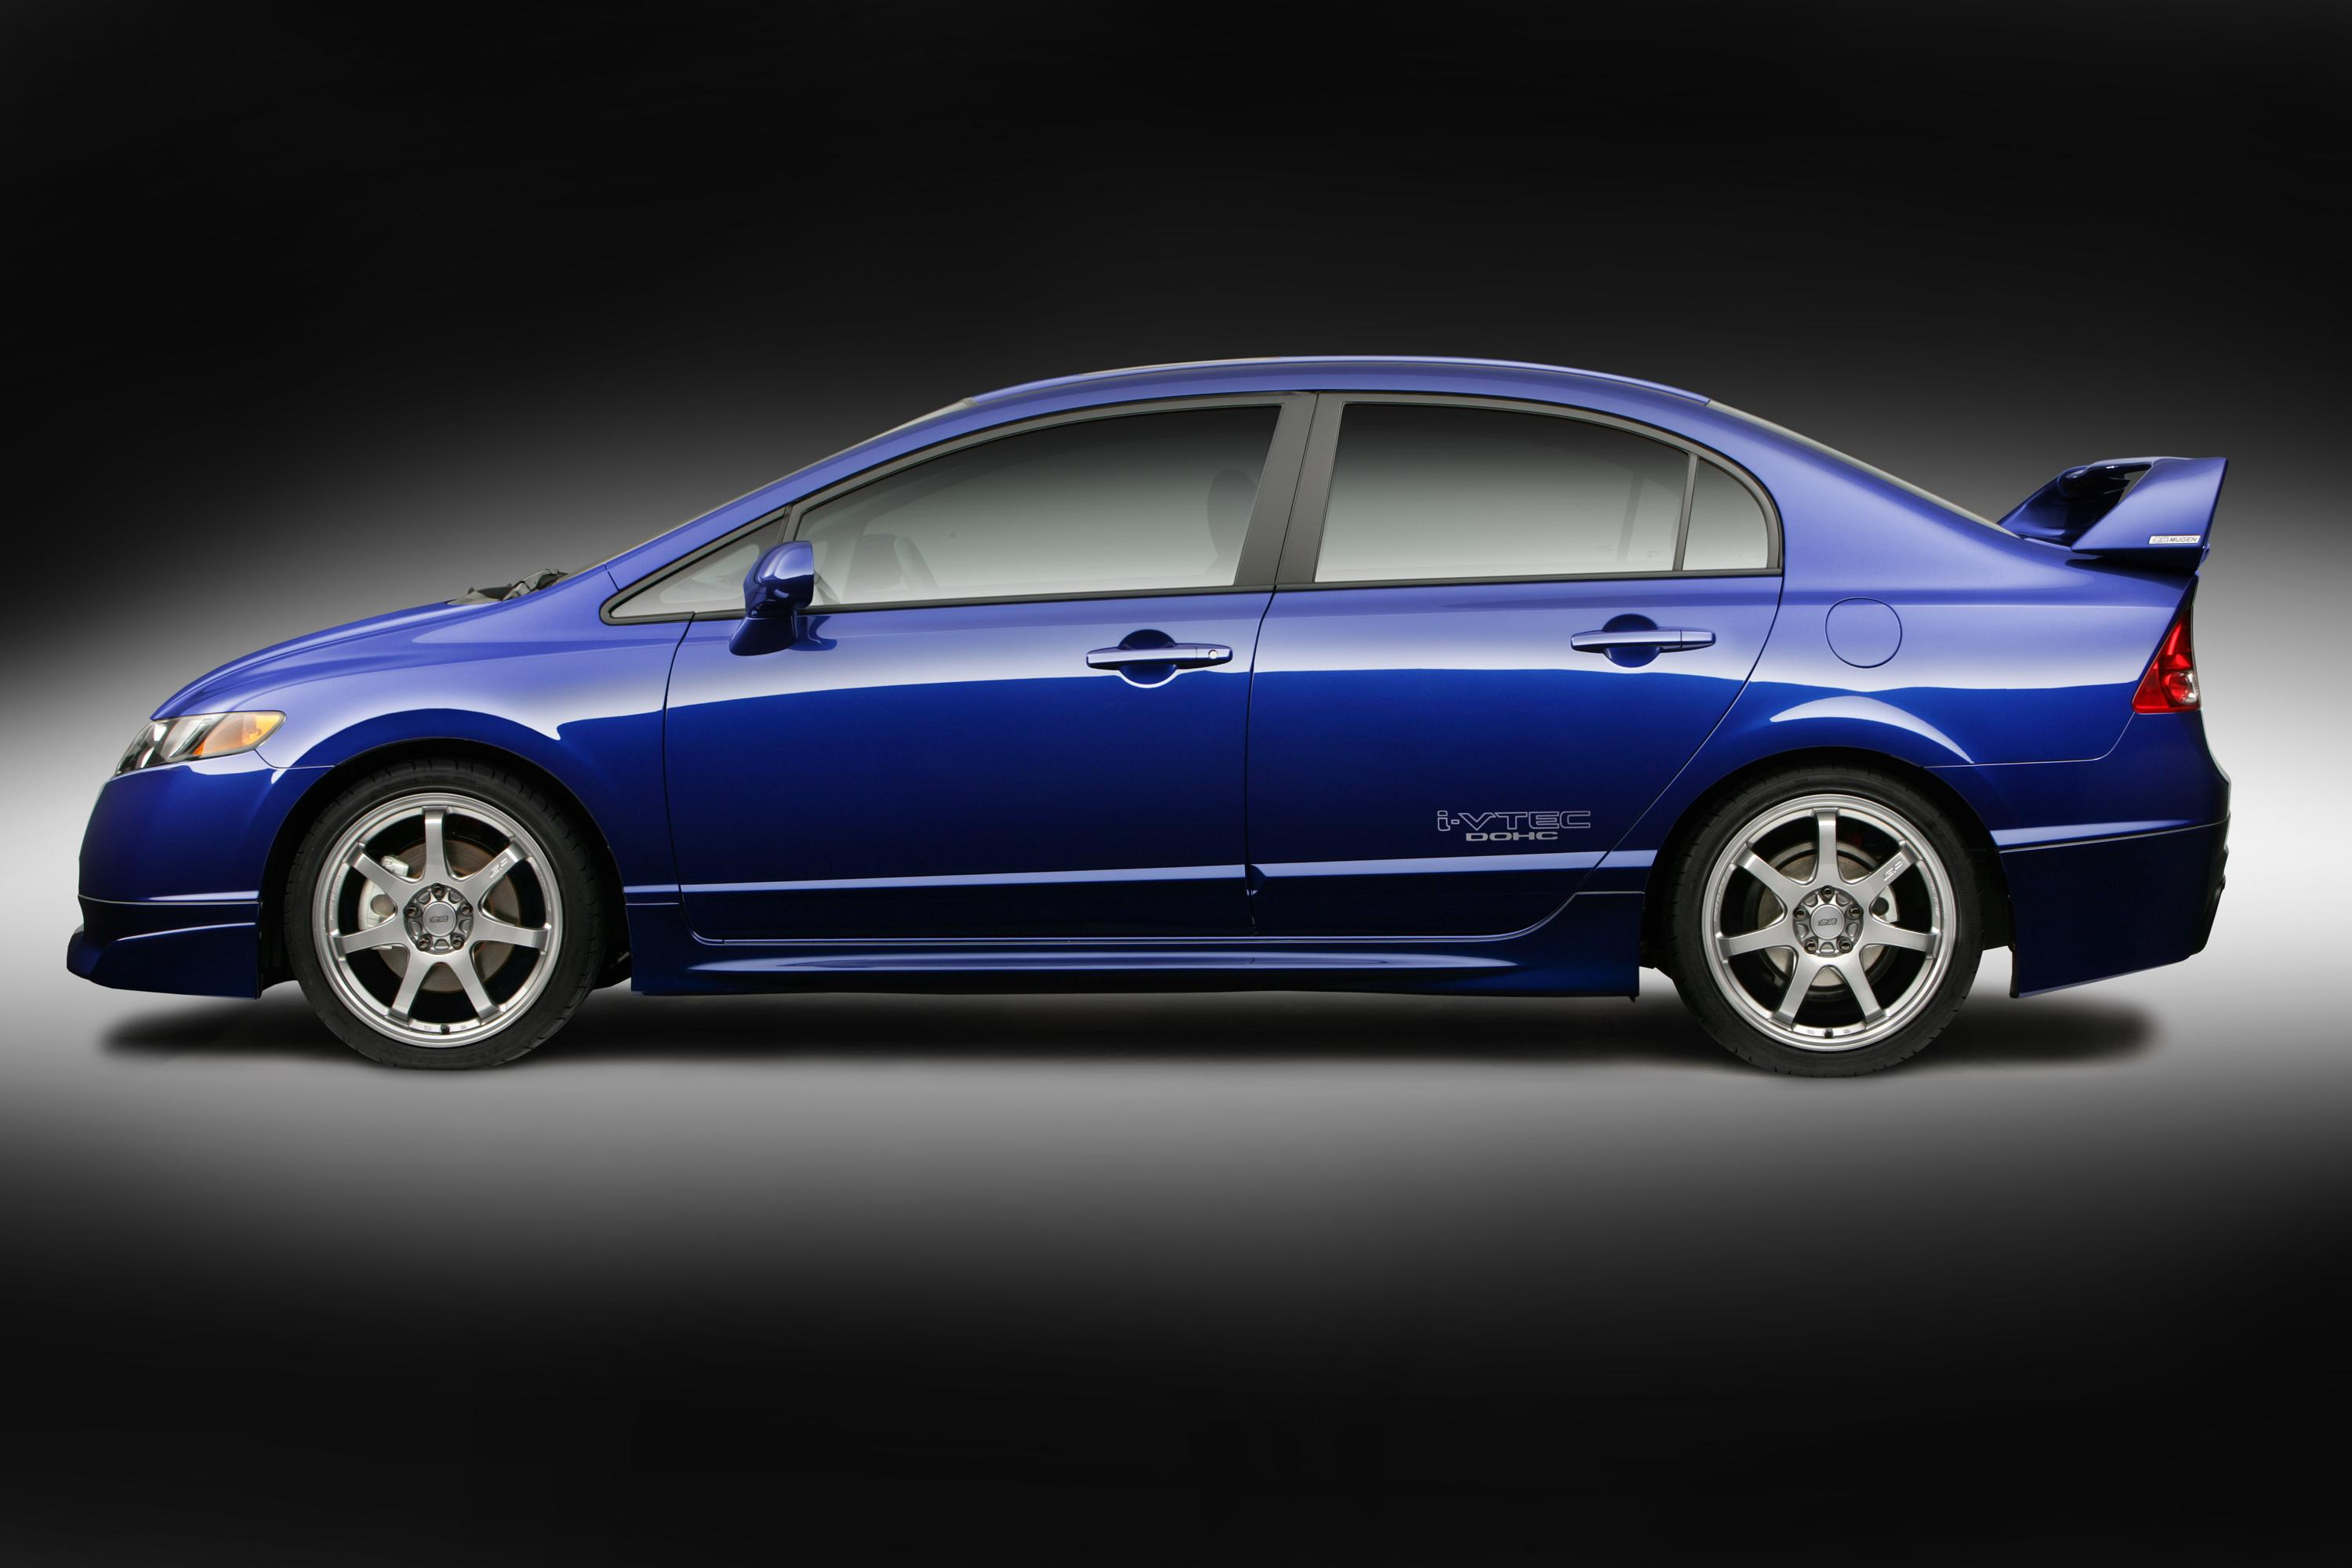 Honda Civic Si 2011 Sedan Www Pixshark Com Images